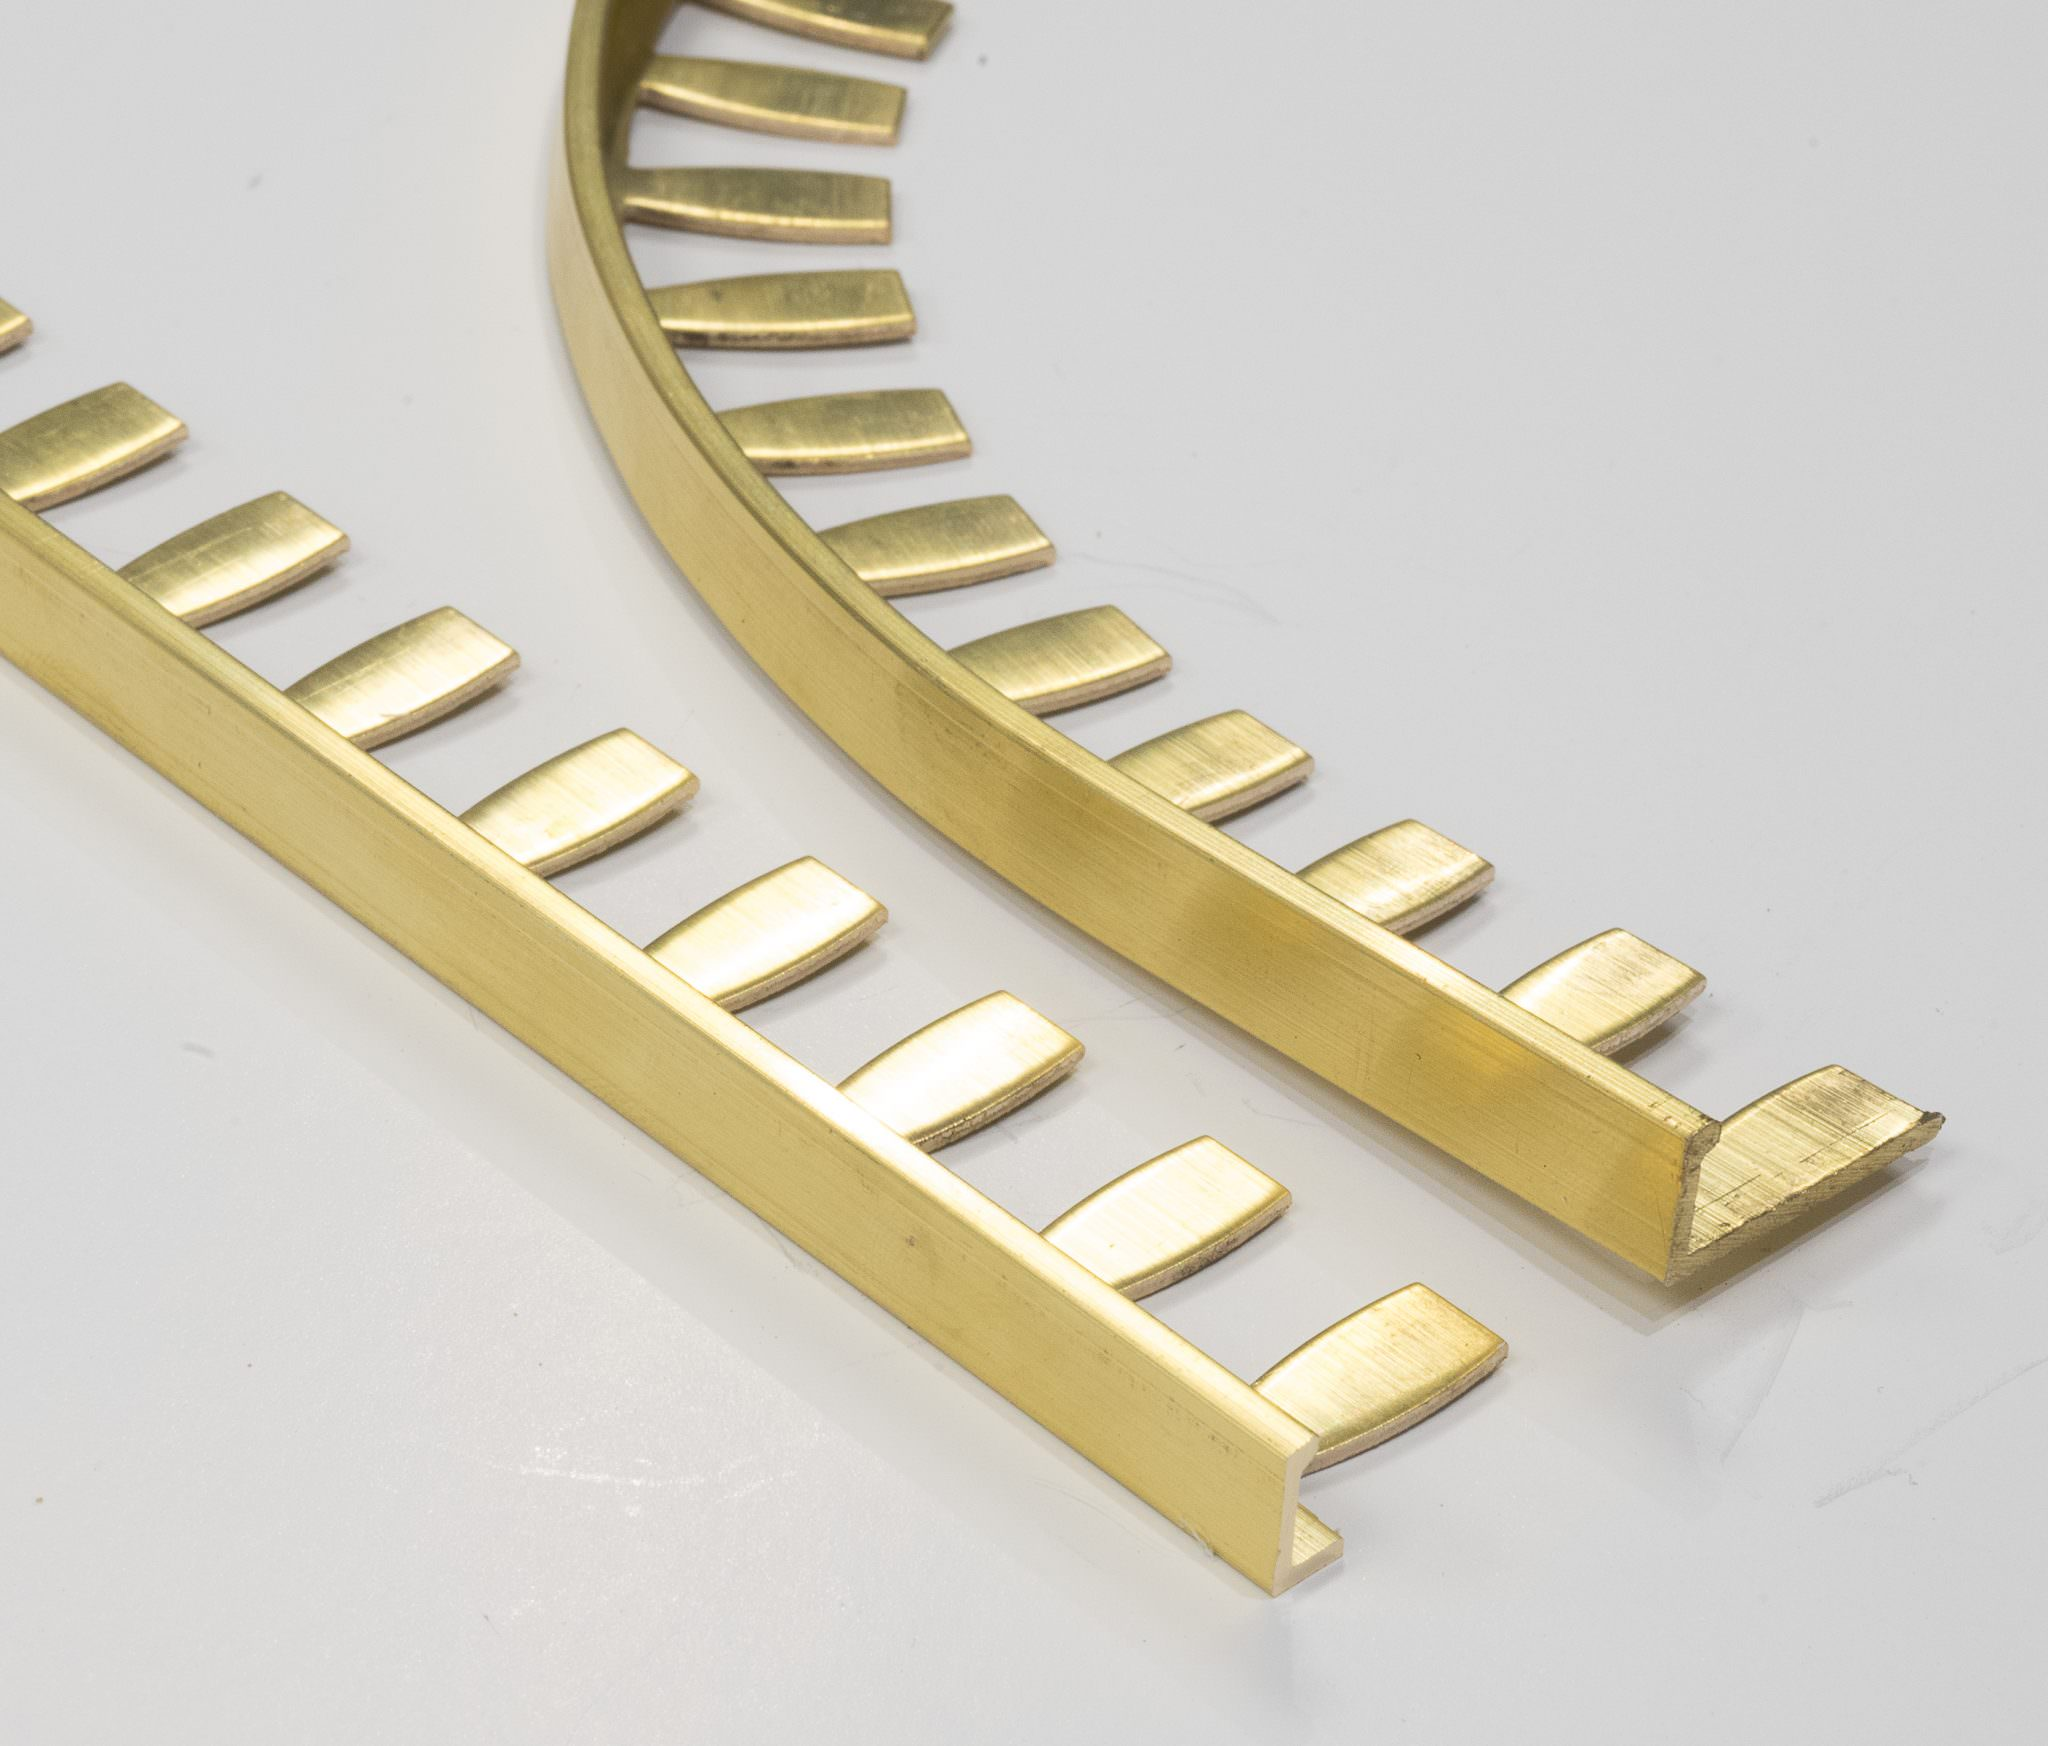 vroma formable brass natural finish l shape 2 5m heavy duty brass tile trims